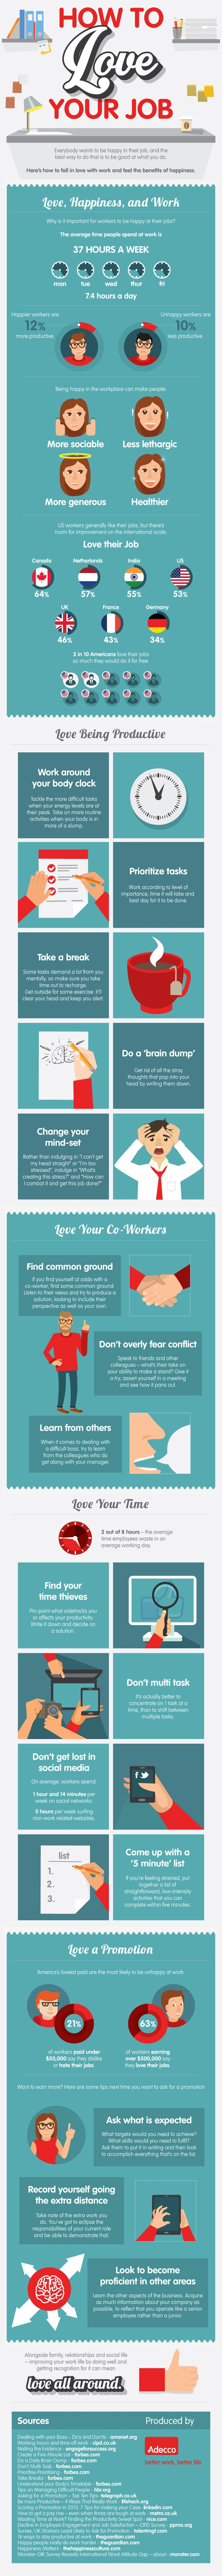 How to Love Your Job (infographic) - Delivering Happiness by Adecco #ilovemyjob